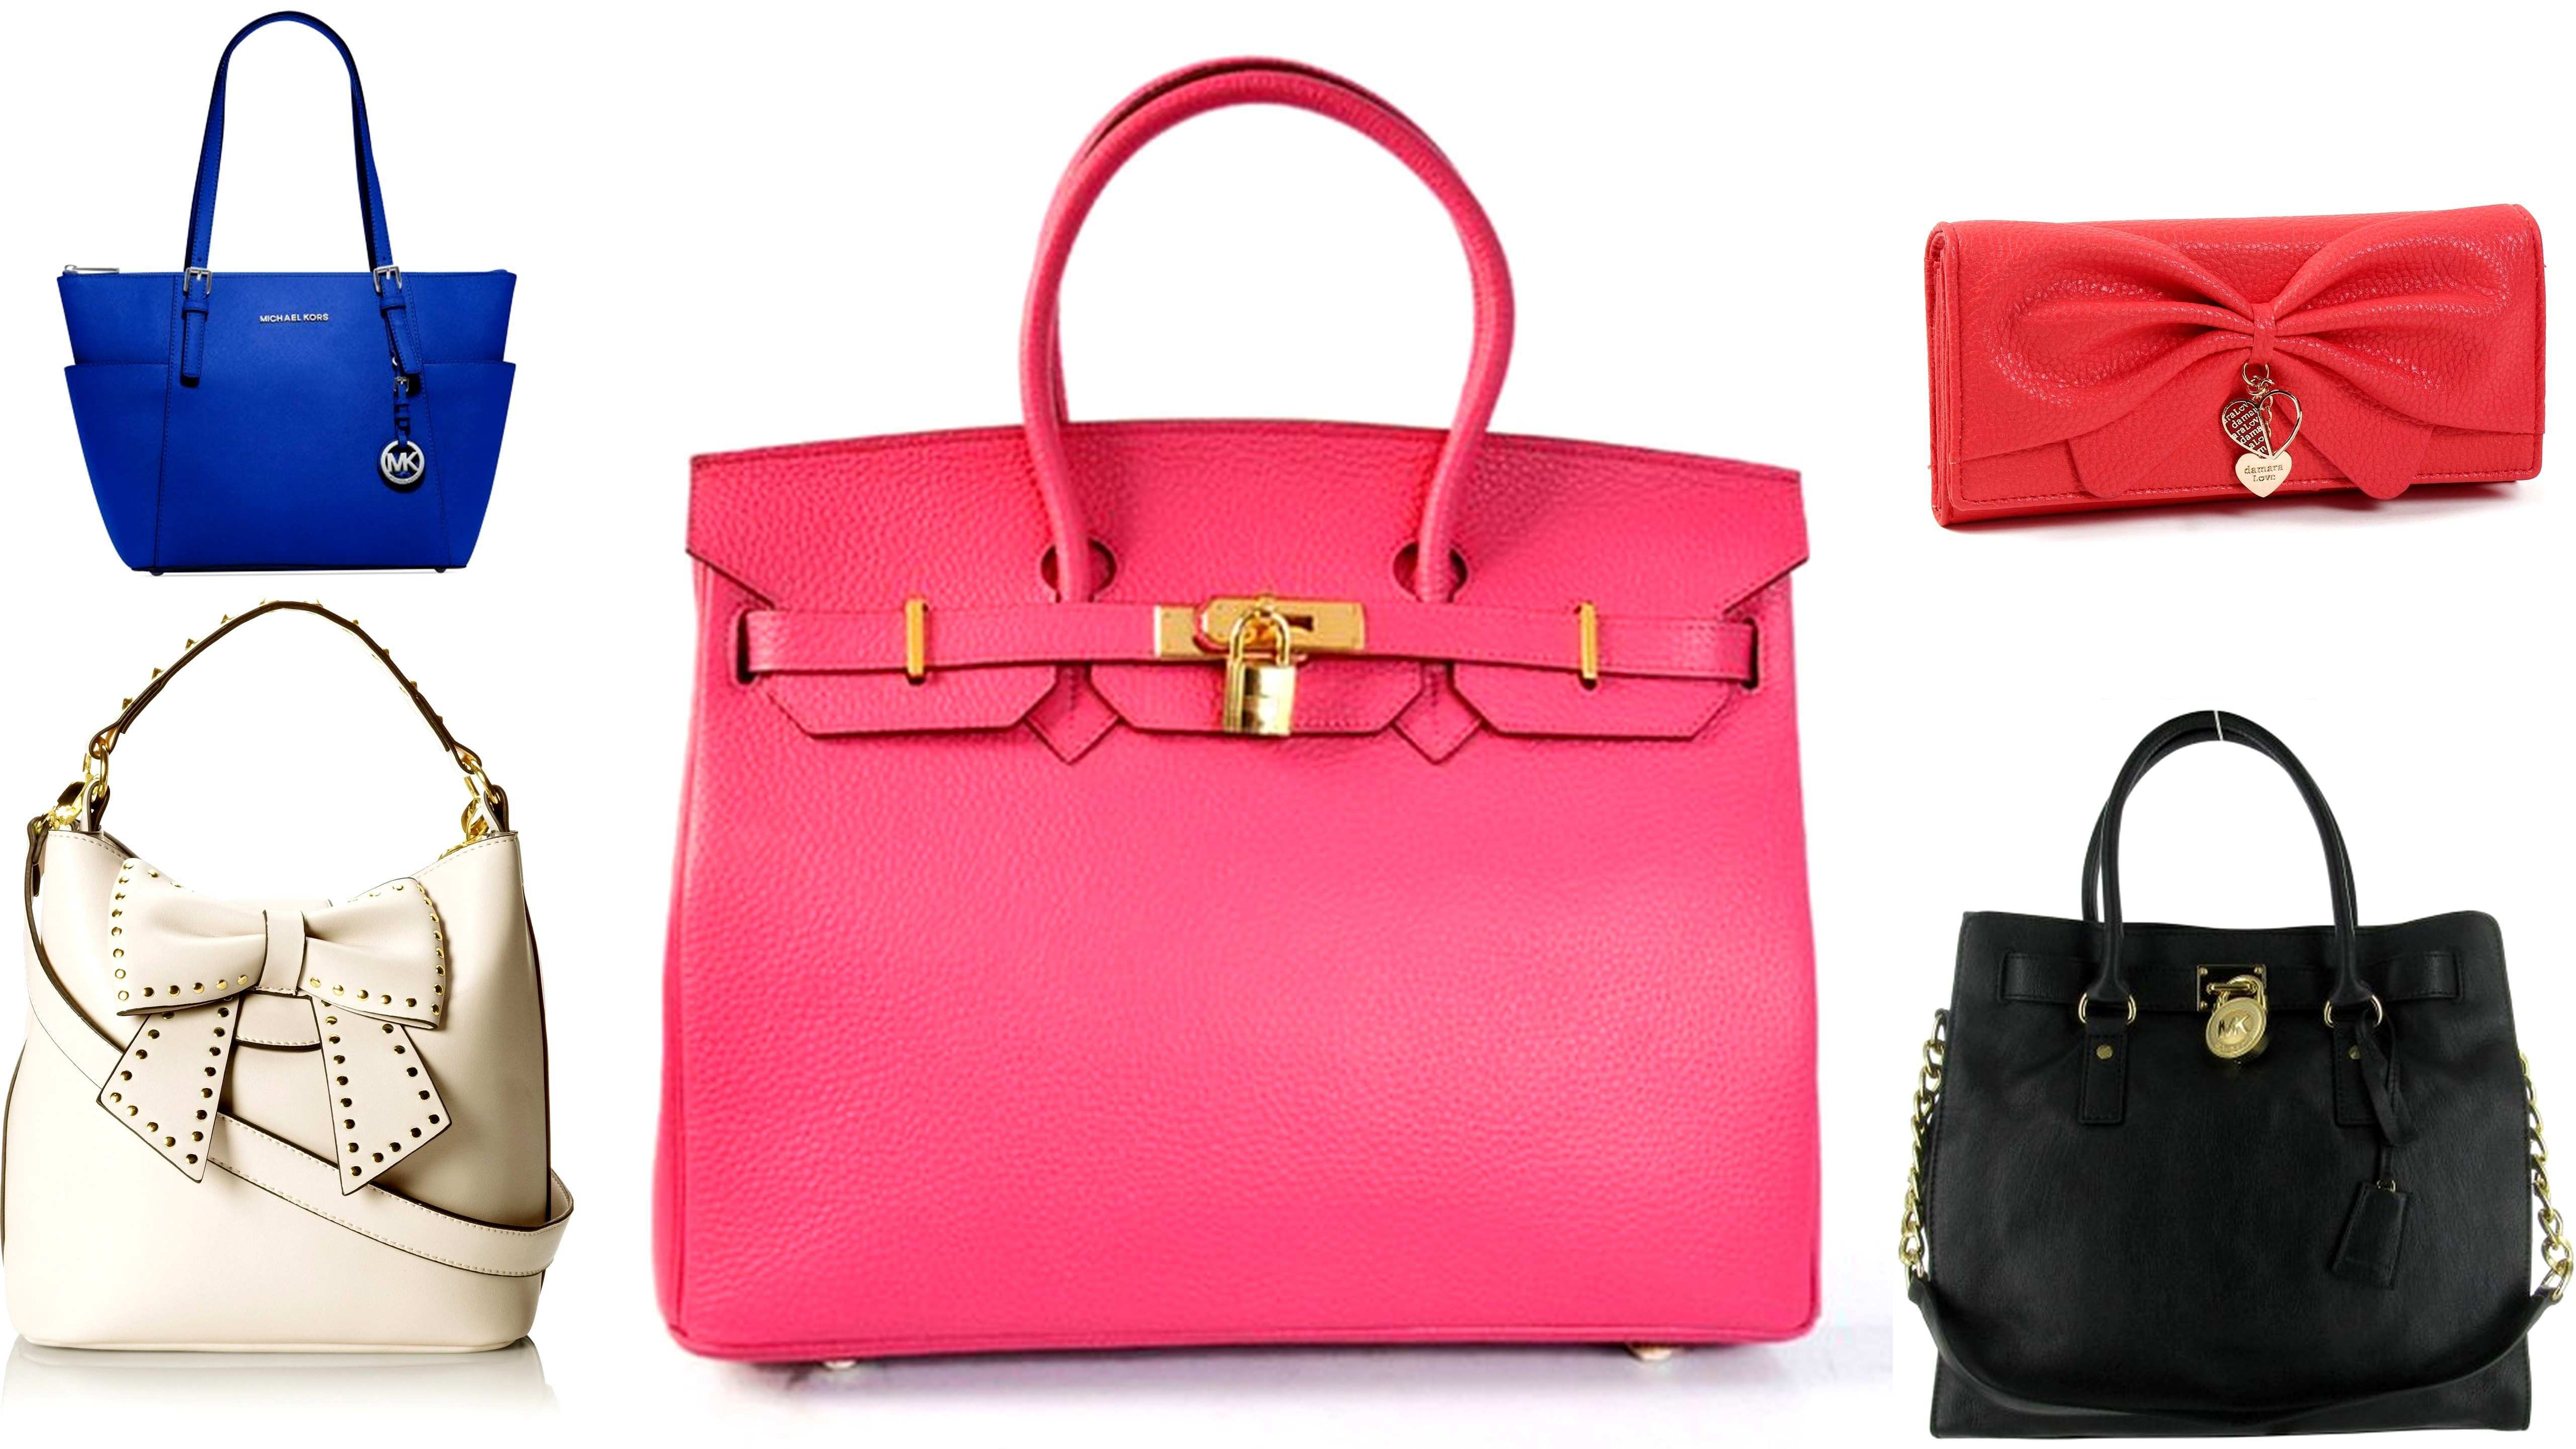 Handbags: The Weakness Of Elite Ladies